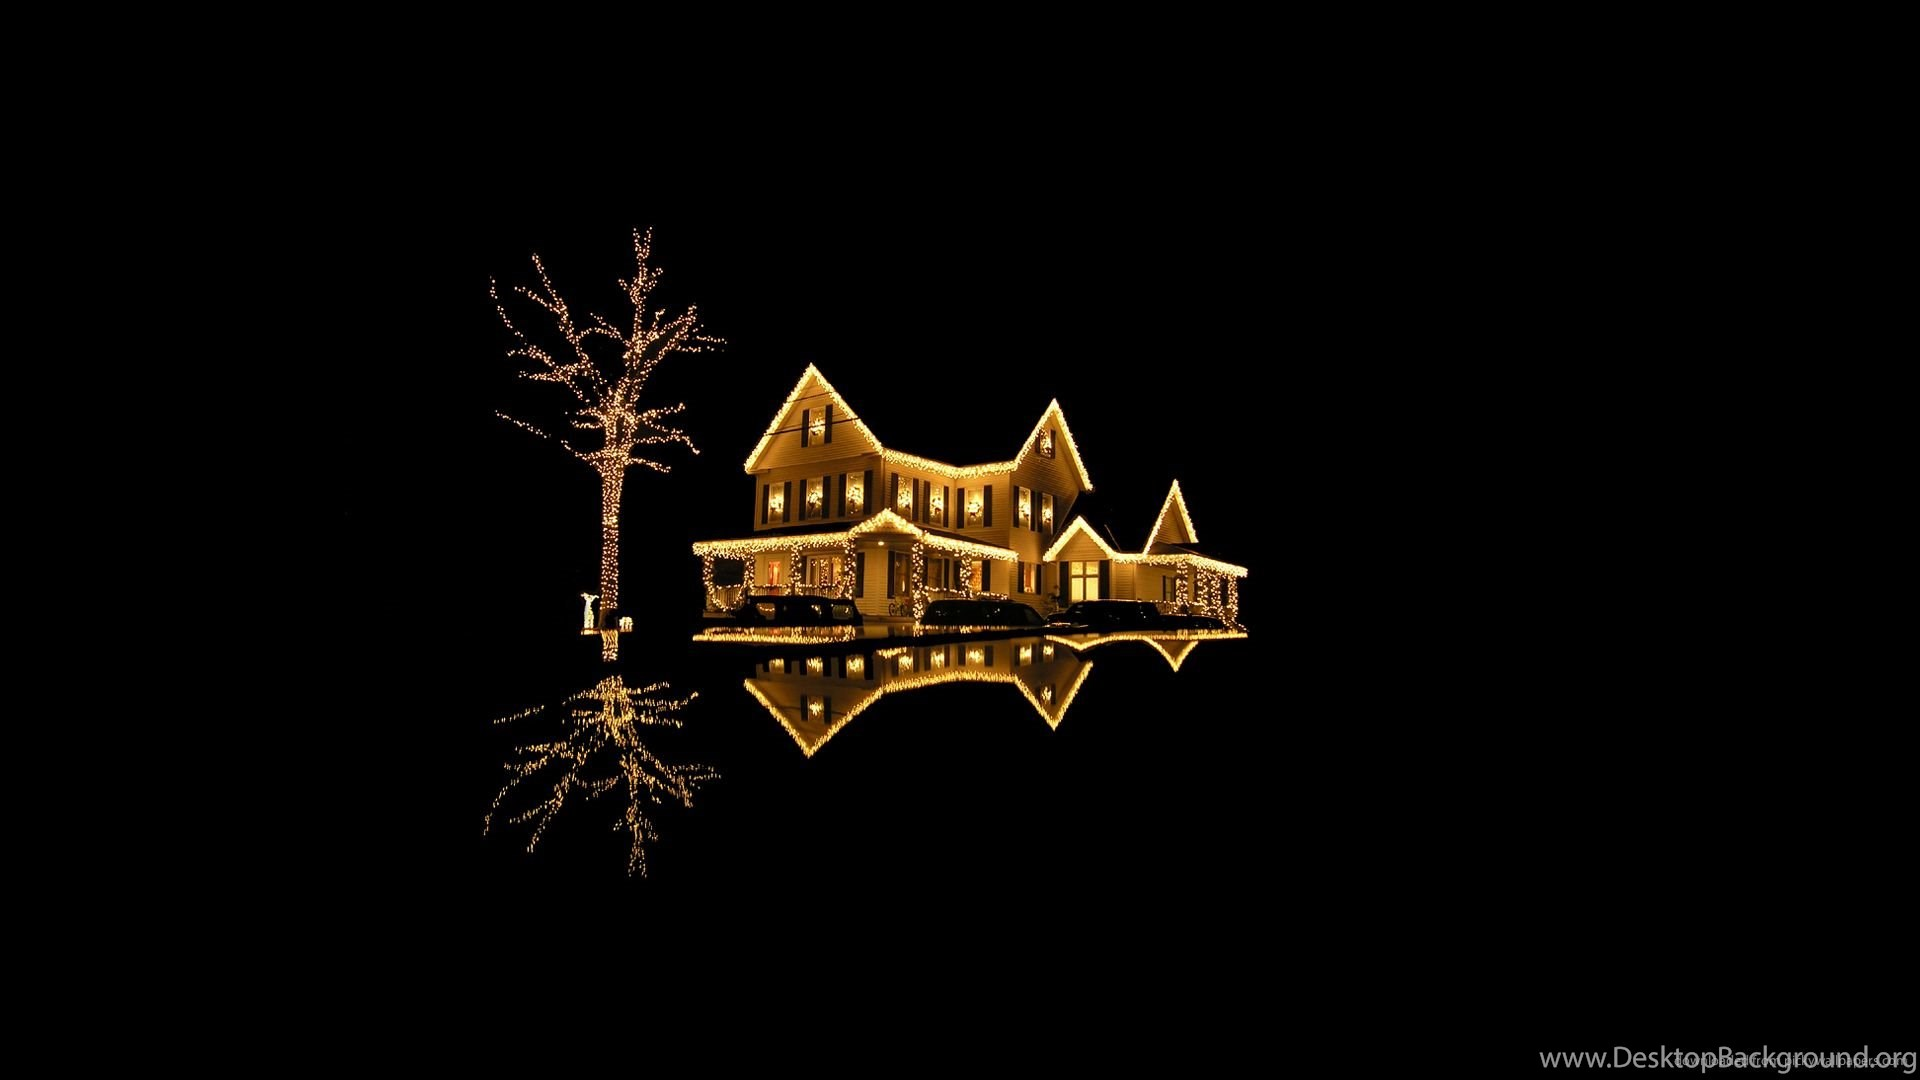 Download 1920x1080 lit house in the dark wallpapers for Wallpaper happy home designer